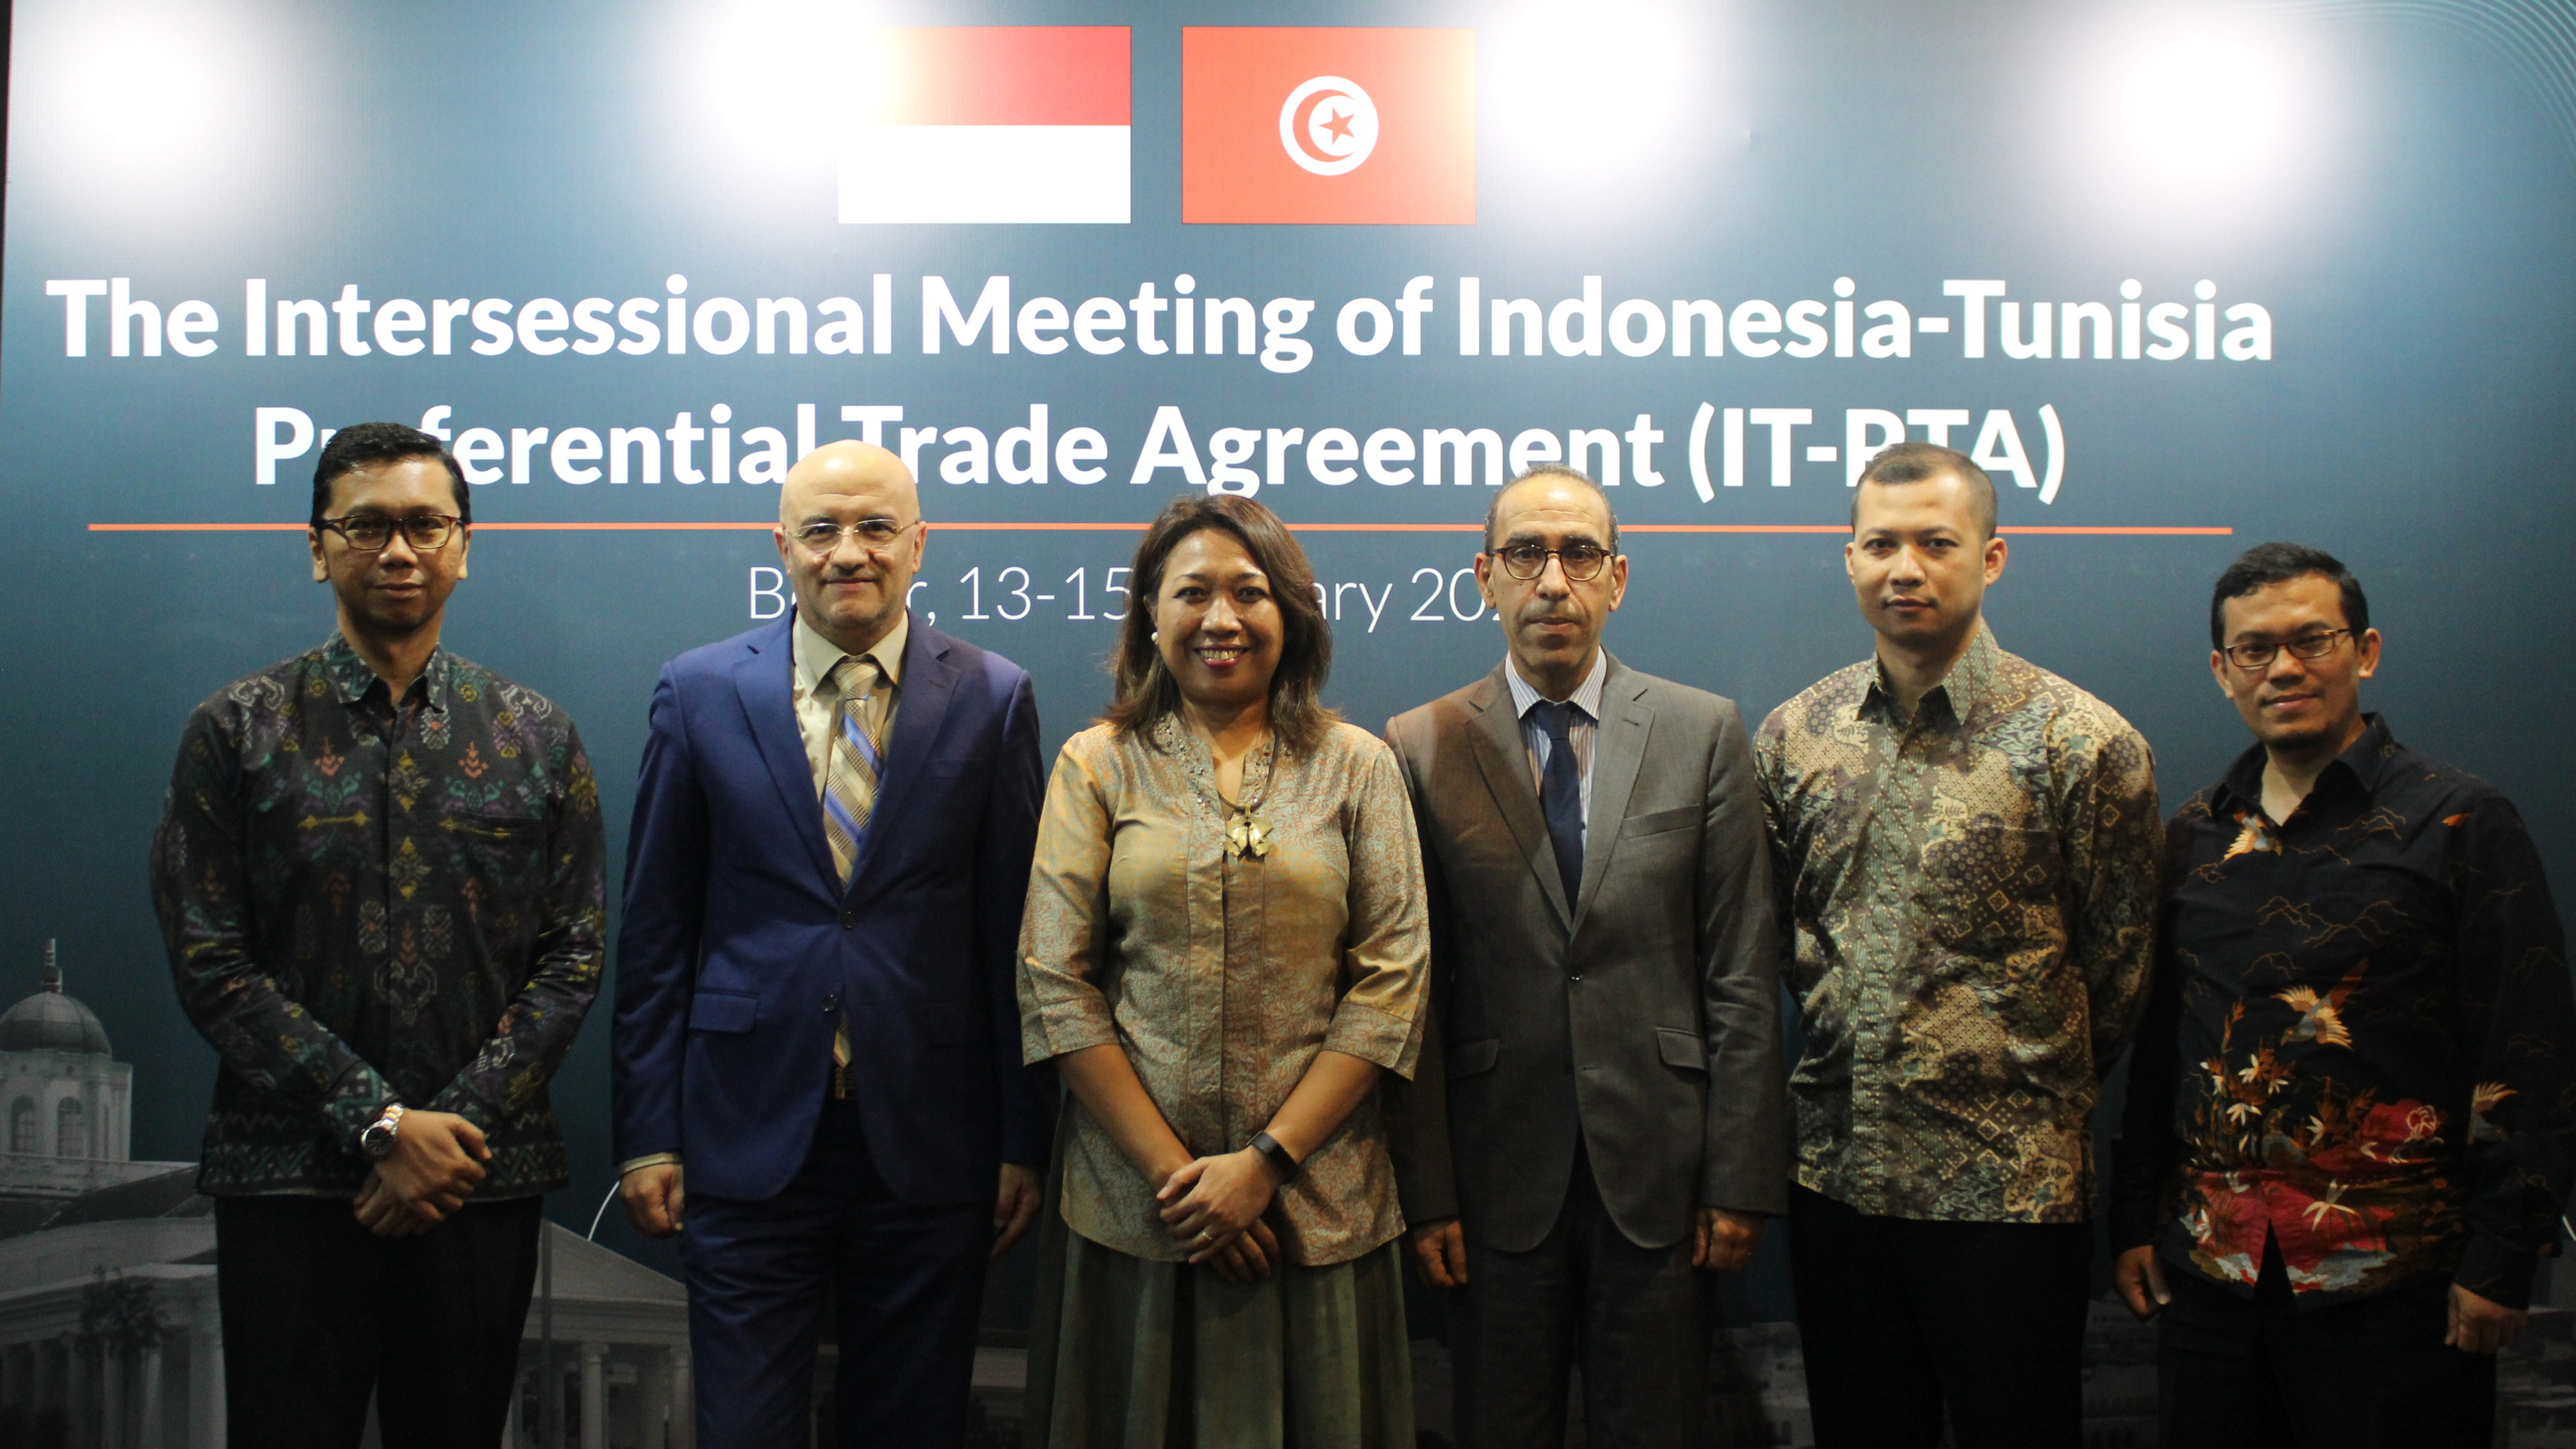 The Intersessional Meeting of Indonesia-Tunisia Preferential Trade Agreement